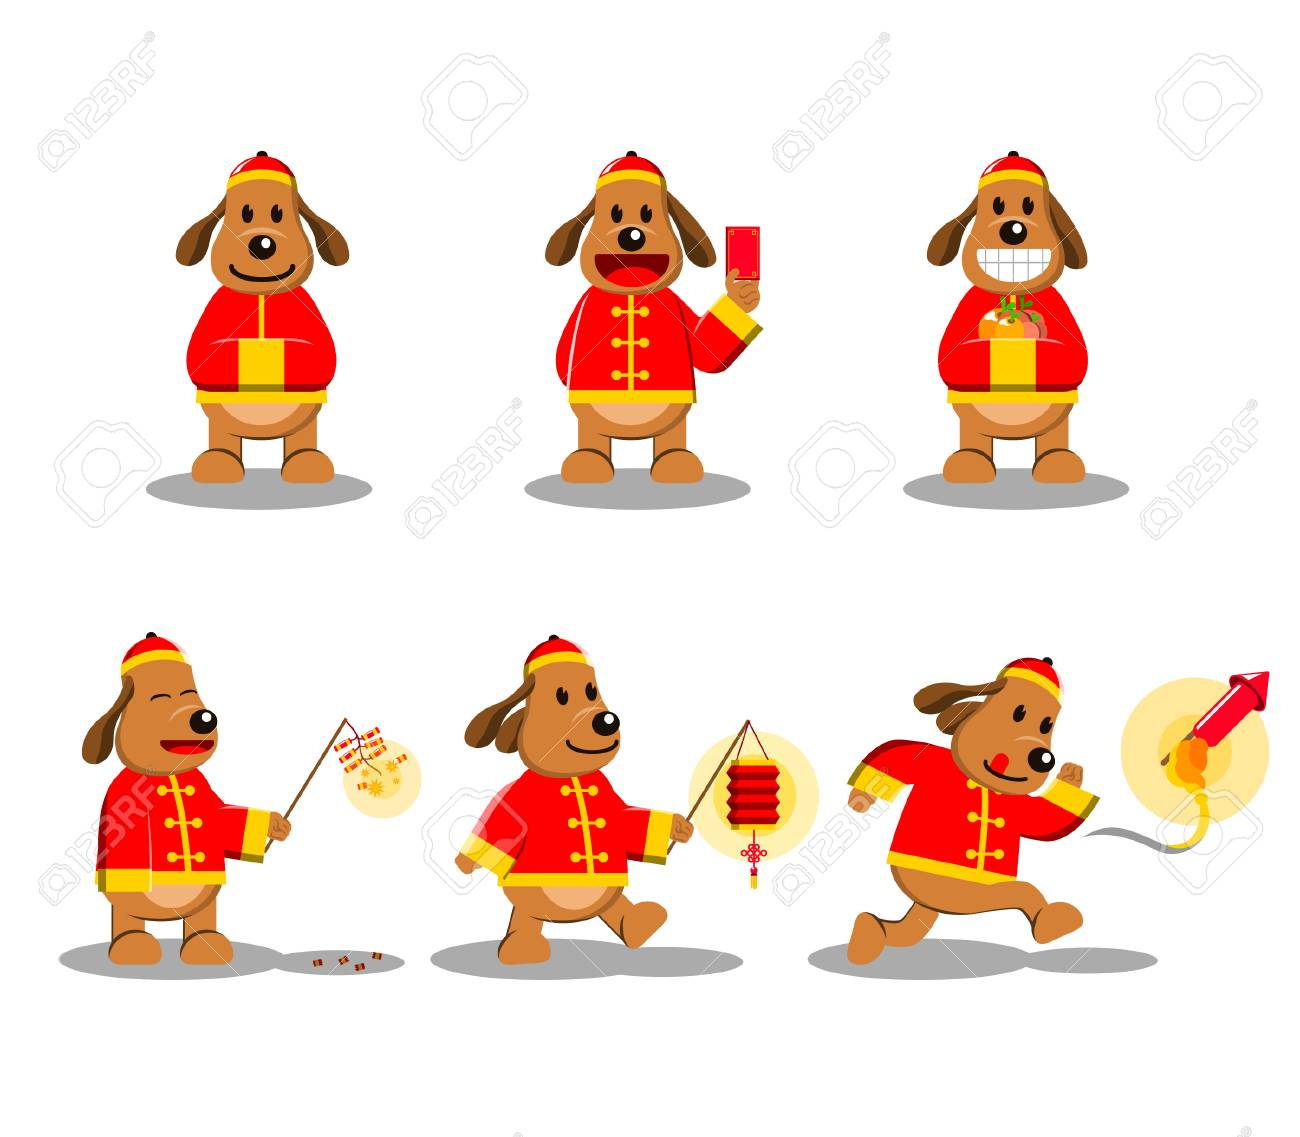 dog cartoon character for chinese new year theme stock vector 89825884